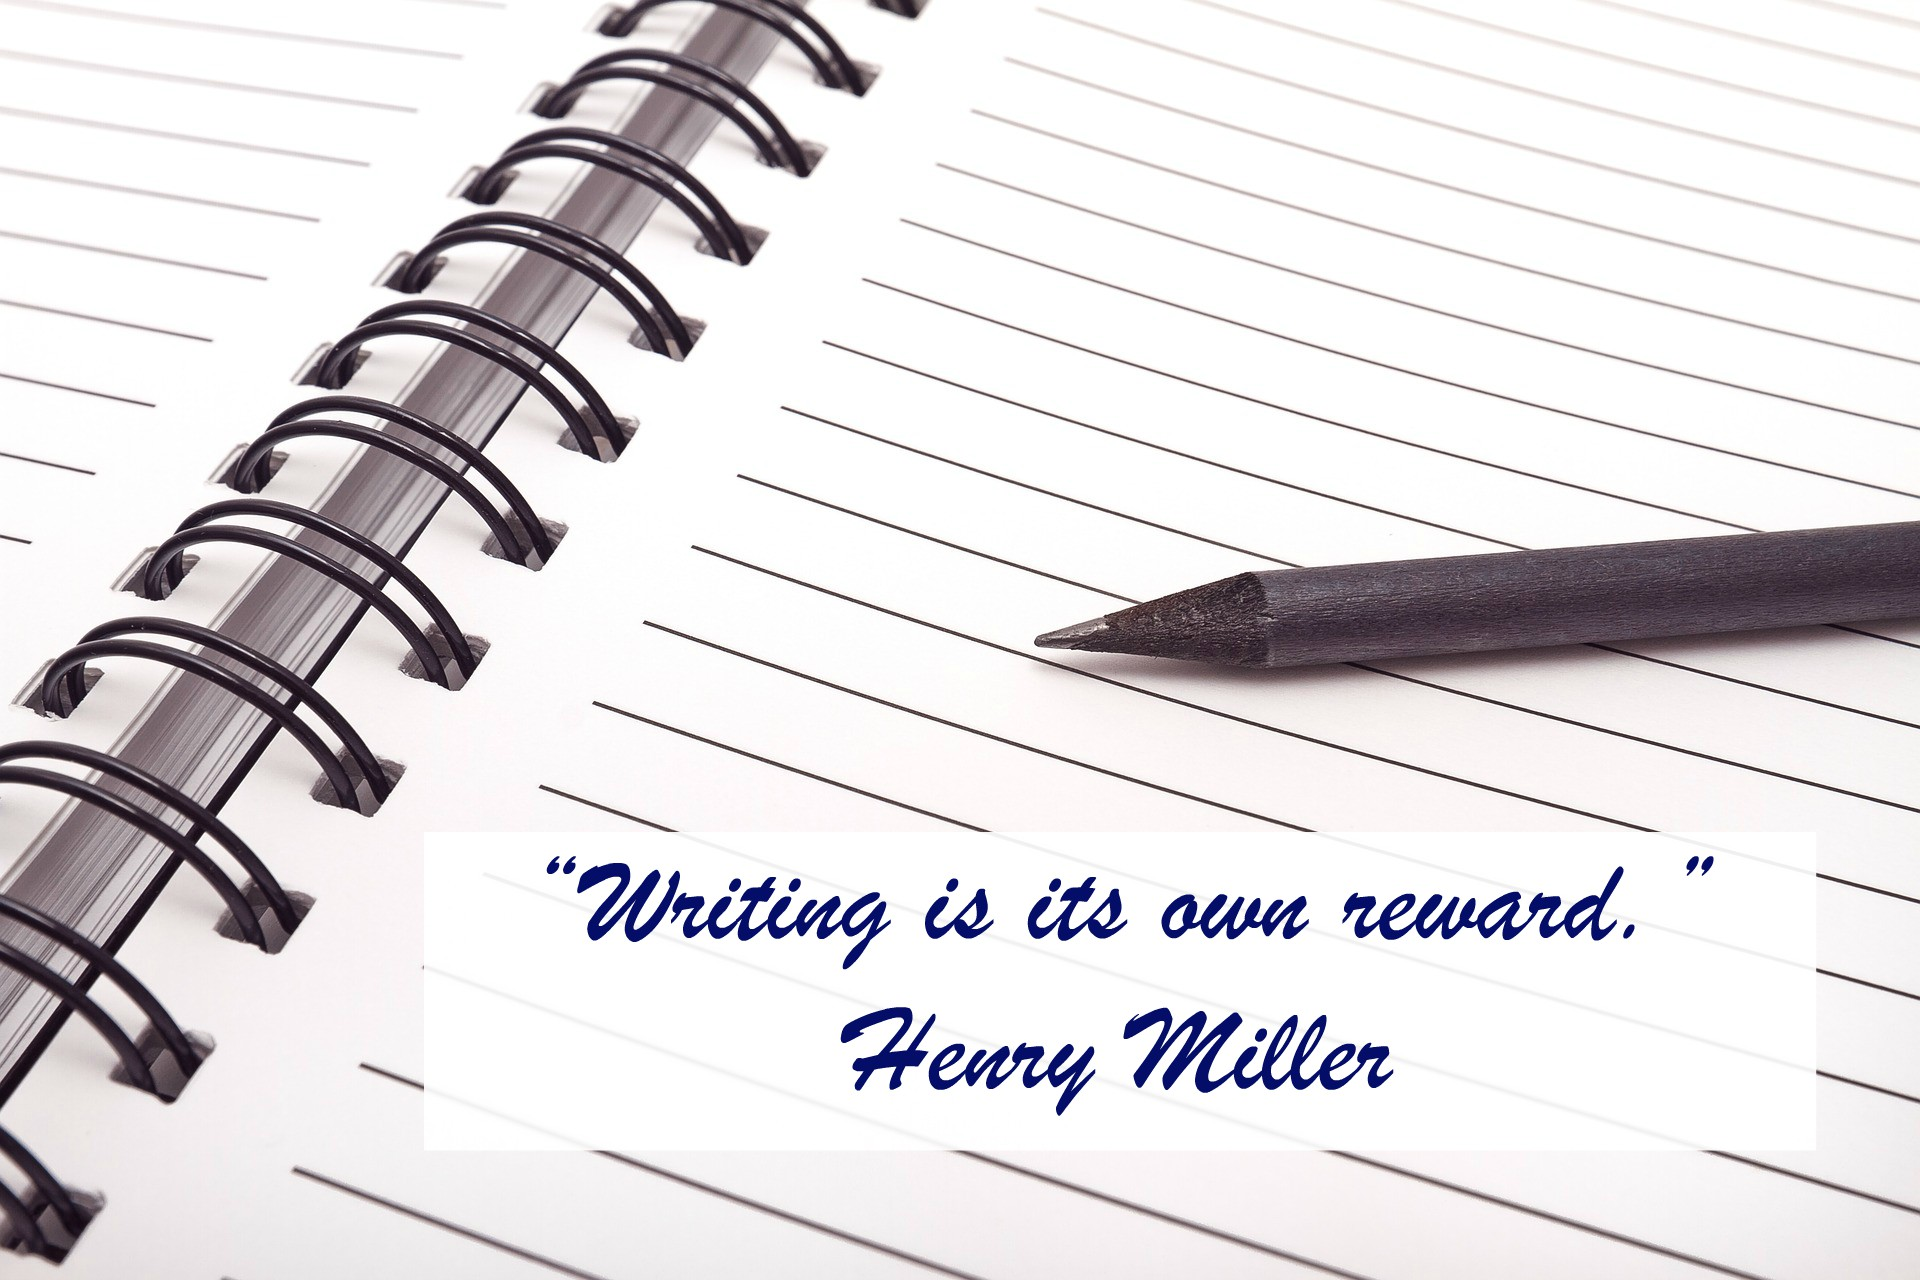 Wednesday Henry Miller Blogging >> Wednesday Writing Inspiration For 3 1 17 From Henry Miller The